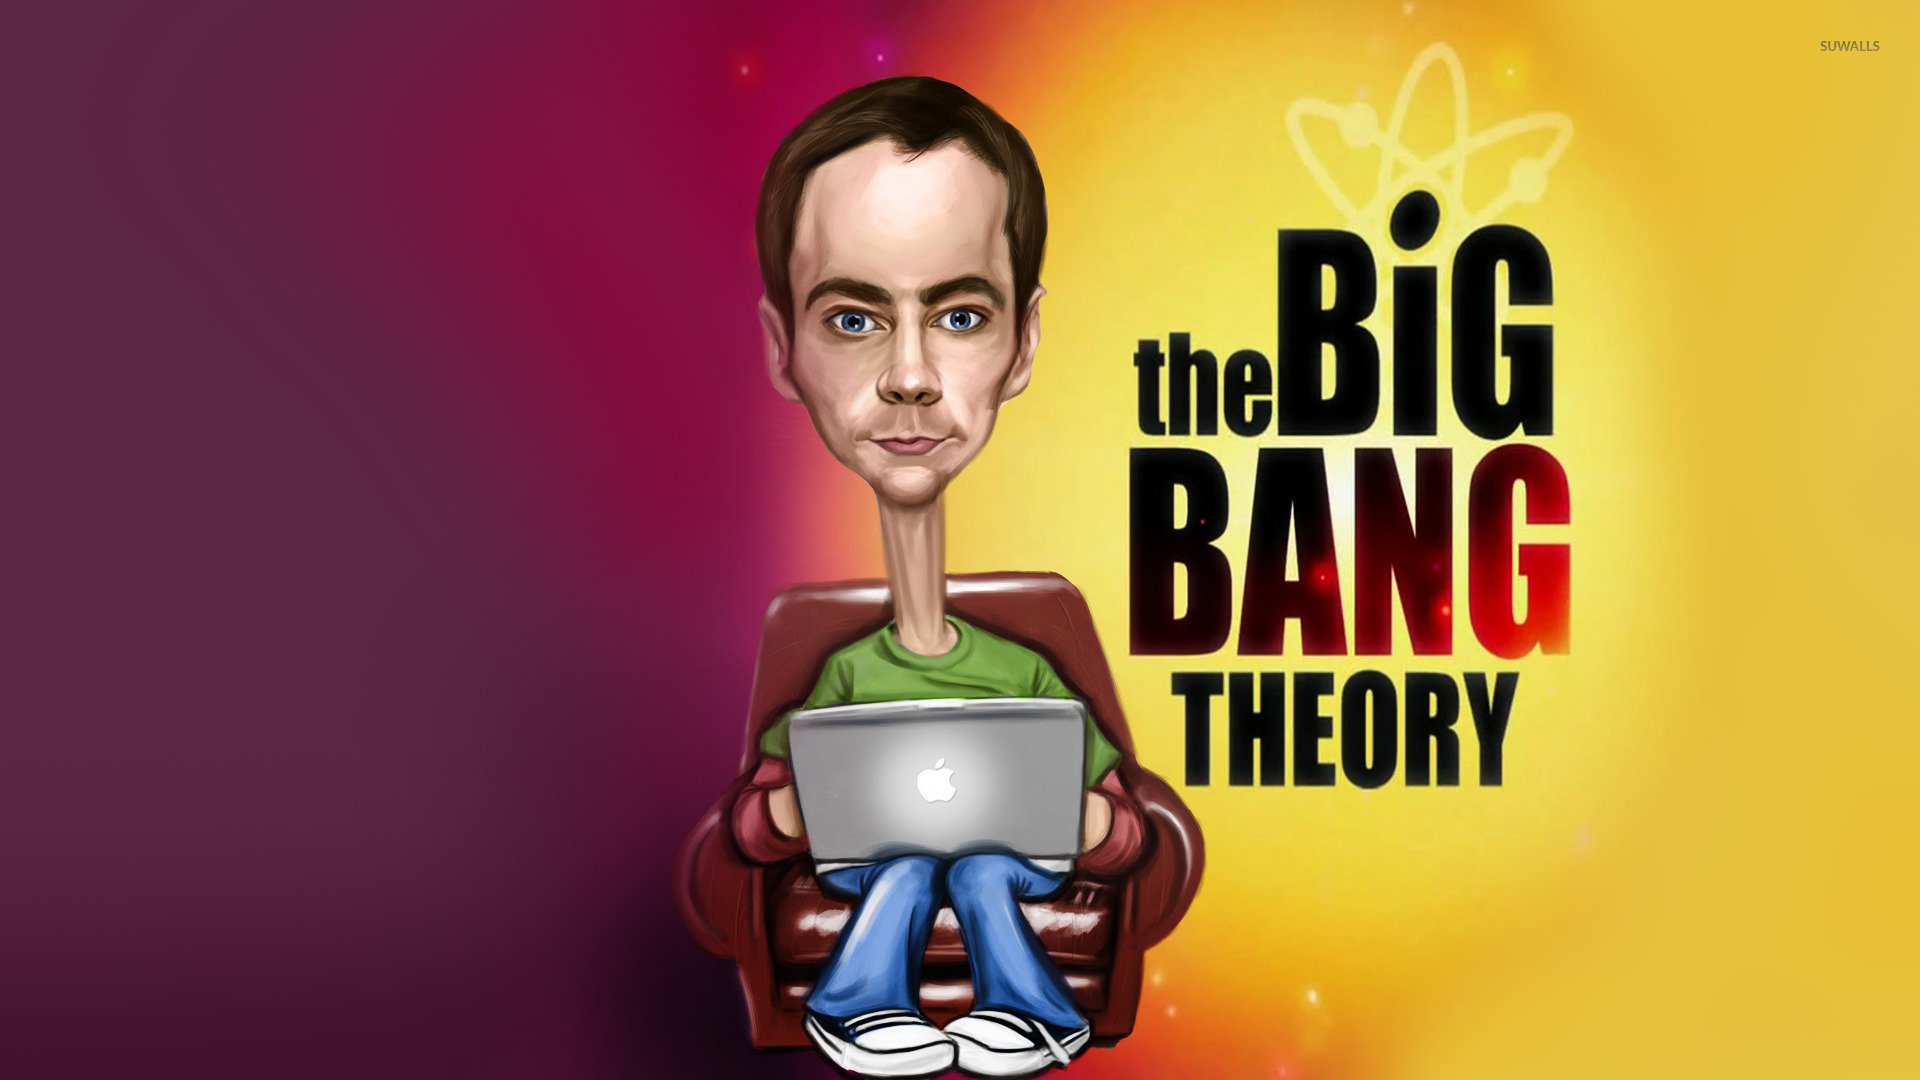 Shannon1982 Images The Big Bang Theory HD Wallpaper And Background Photos